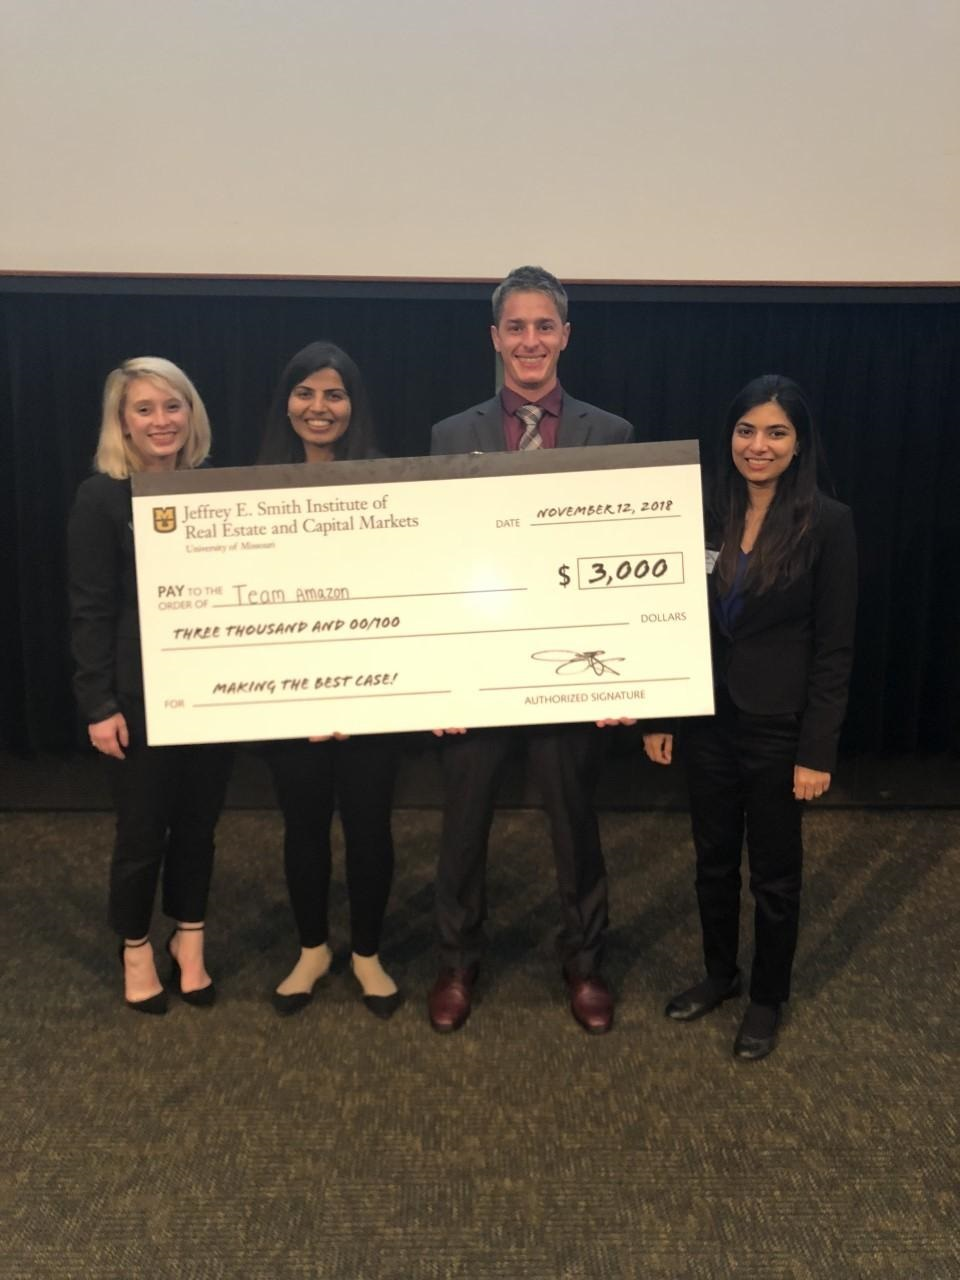 Bhagchandani and her team of fellow MBA students competed in the Trends in Real Estate and Capital Markets Forum student competition at MU. The group won first place and received a prize of $3,000.